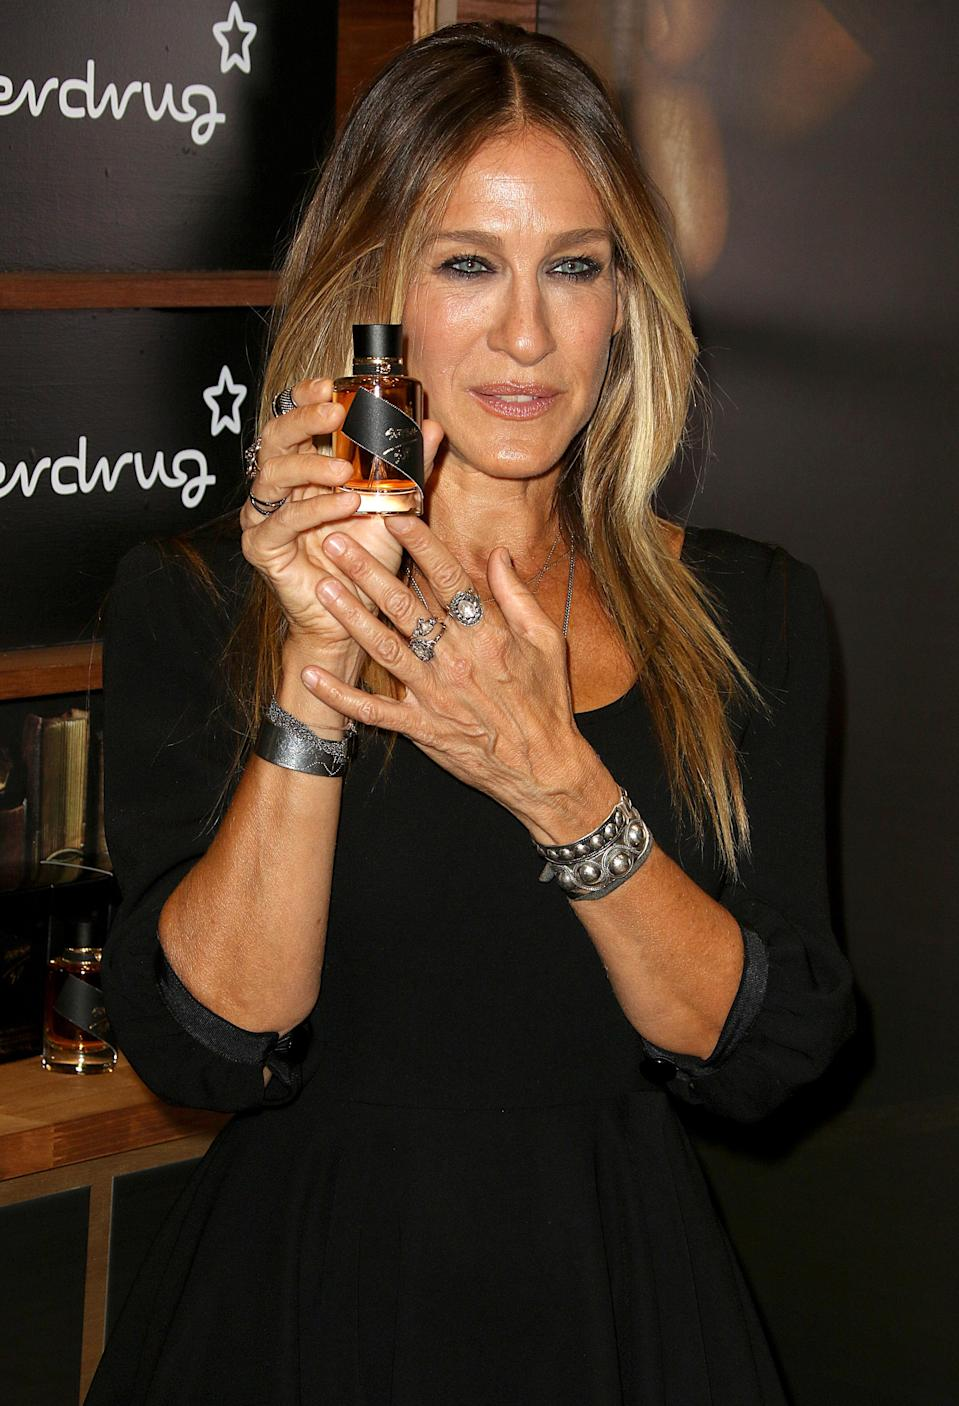 """<p>SJP released her first fragrance, Lovely, in 2005 following it up with five more: Covet, Covet Pure Bloom, Dawn, Endless and Twilight. In 2009, she launched yet another, calling it NYC. A year later, it was revealed that the new perfume had netted the 'Sex and the City' star <a href=""""https://www.popsugar.com/celebrity/Angelina-Jolie-Sarah-Jessica-Parker-Top-Paid-Actresses-30-Million-18174427"""" rel=""""nofollow noopener"""" target=""""_blank"""" data-ylk=""""slk:£13.5 million"""" class=""""link rapid-noclick-resp"""">£13.5 million</a>.<br><i>[Photo: Getty]</i> </p>"""